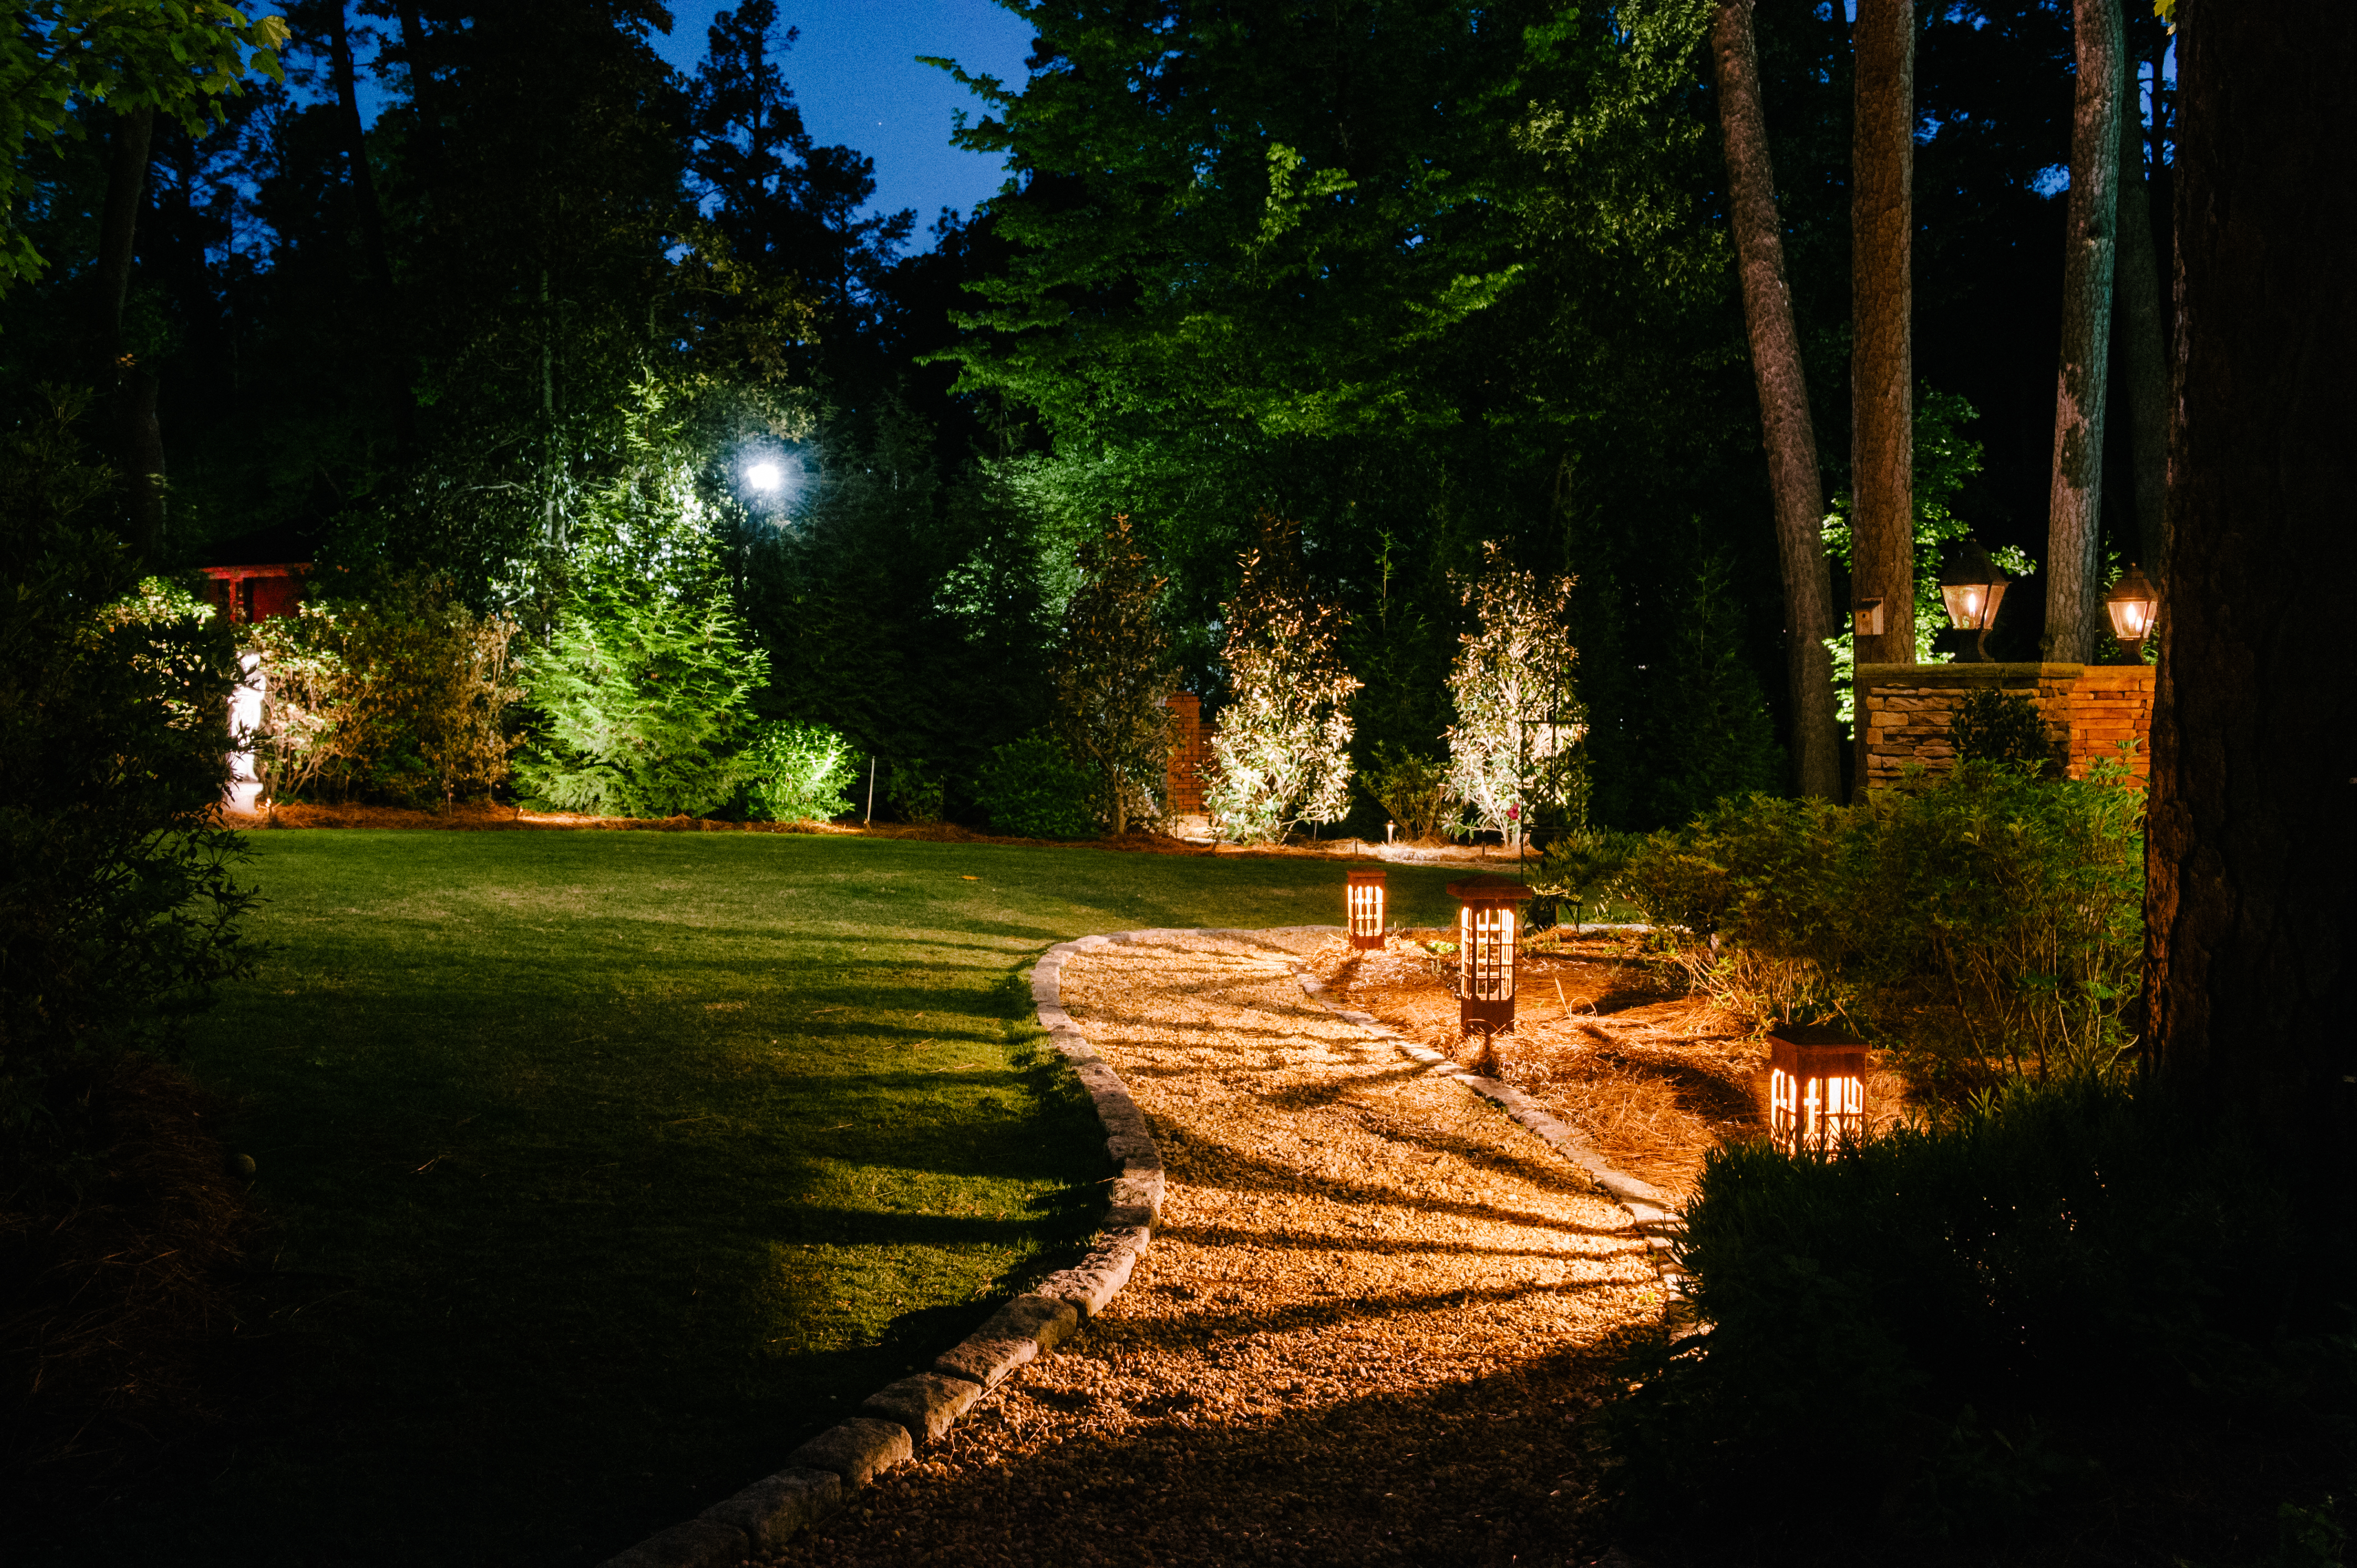 Landscape and garden lighting in little rock jonesboro our professional lighting is perfect for trees statues pathways and other backyard features we use the best quality fixtures to give you the best aloadofball Choice Image